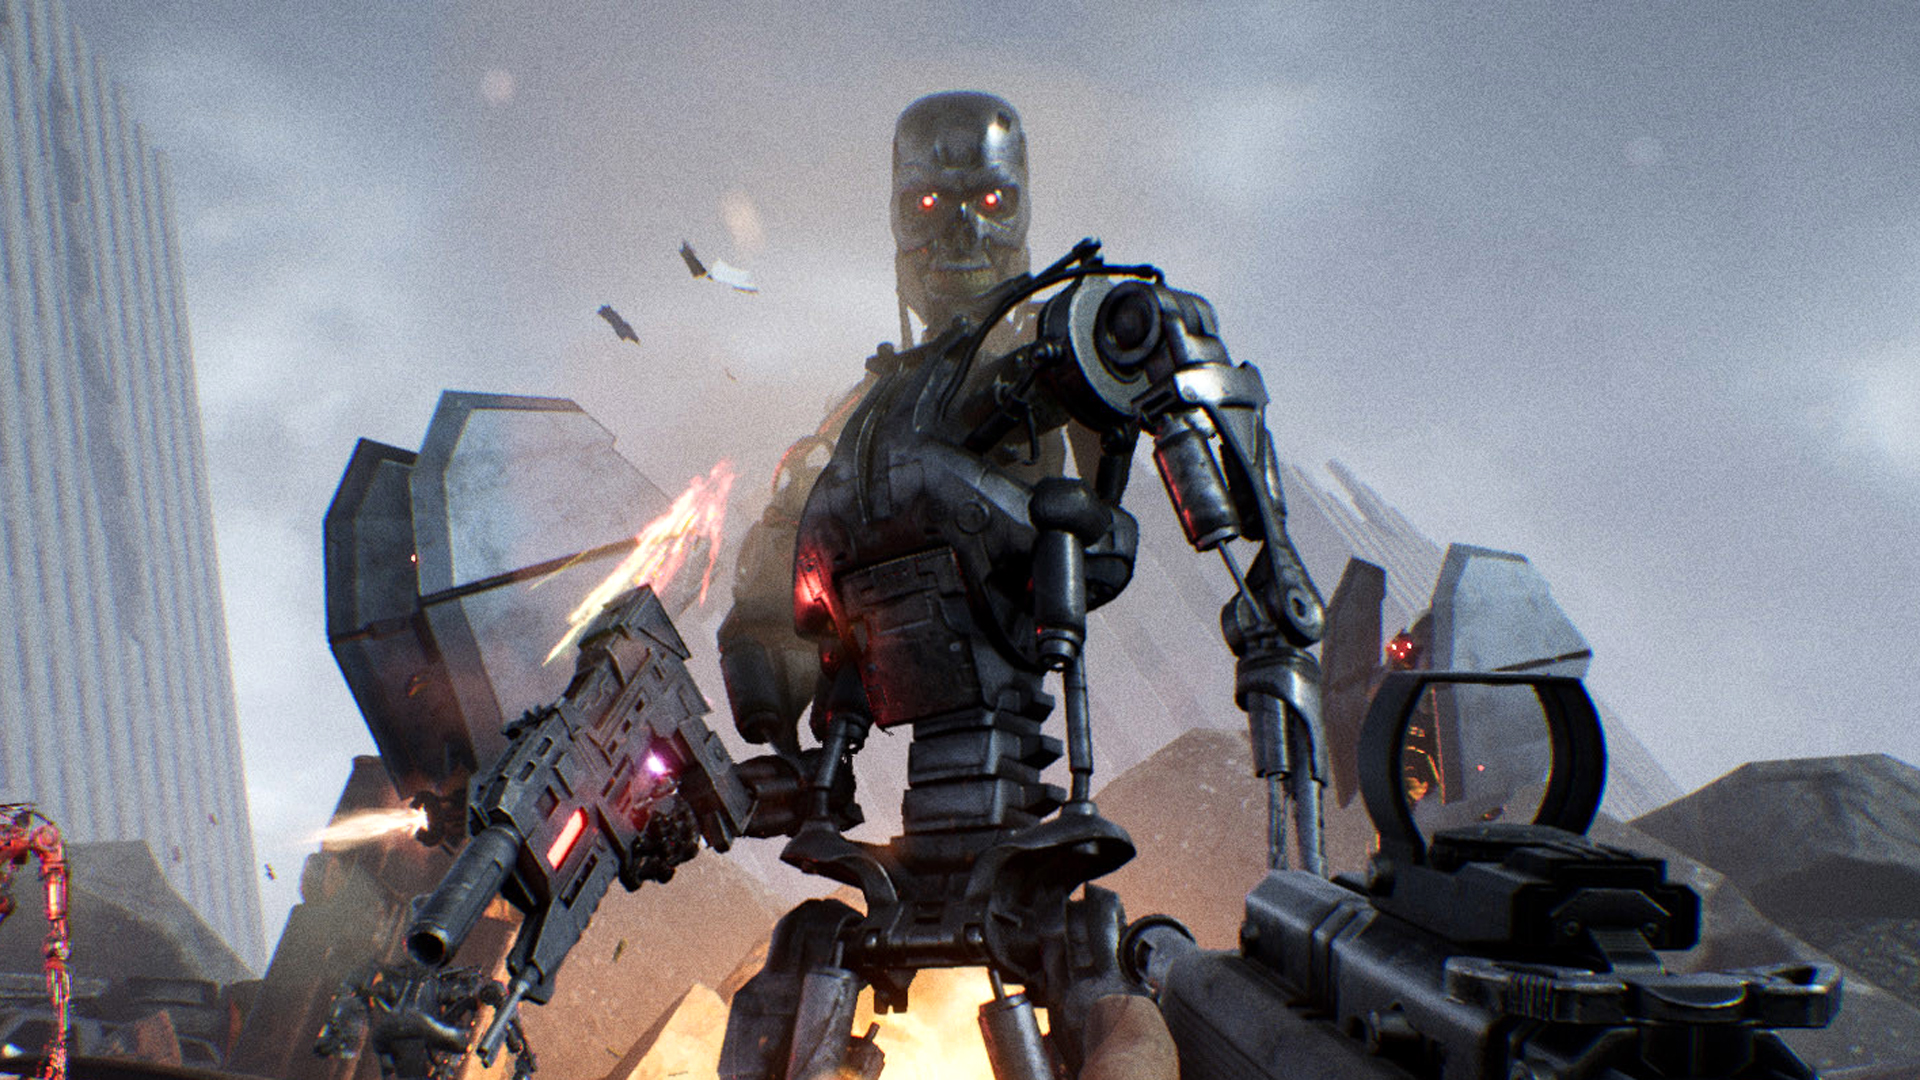 Terminator Resistance is getting more story DLC, apparently